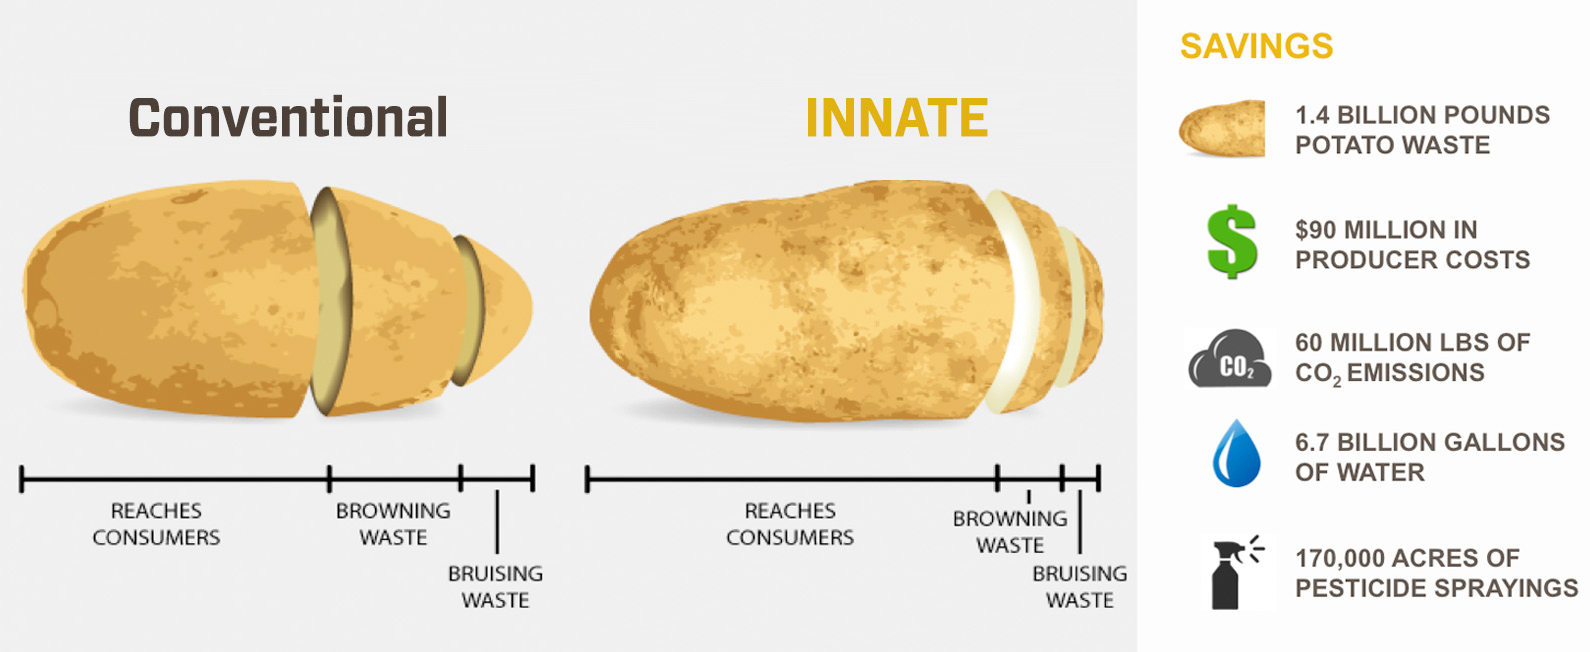 gm-innate-potato-marketing